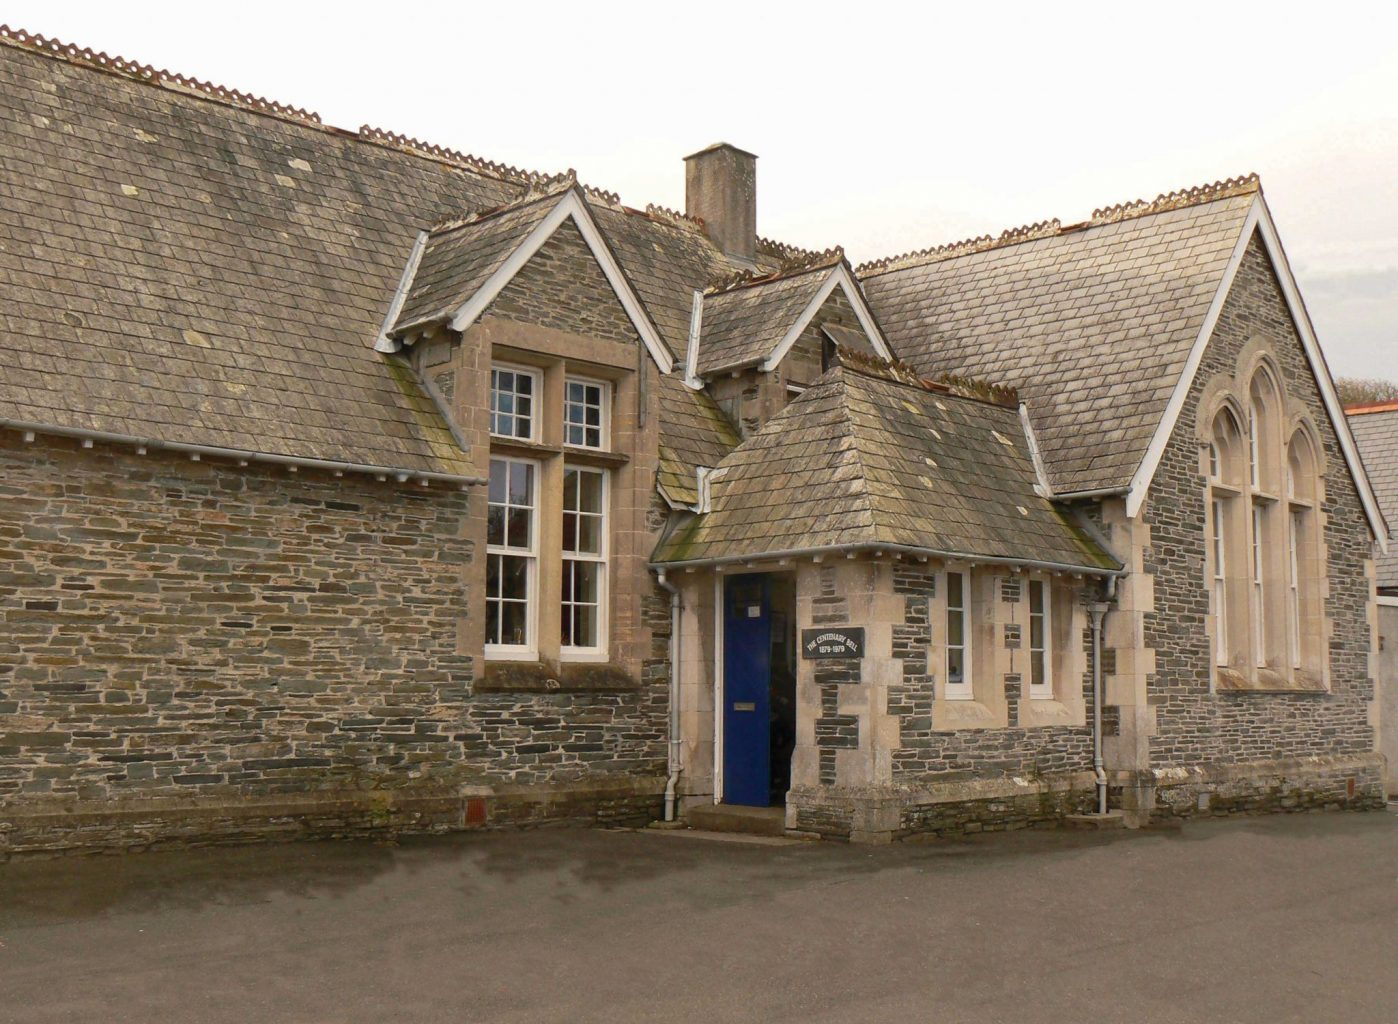 Boscastle Board School